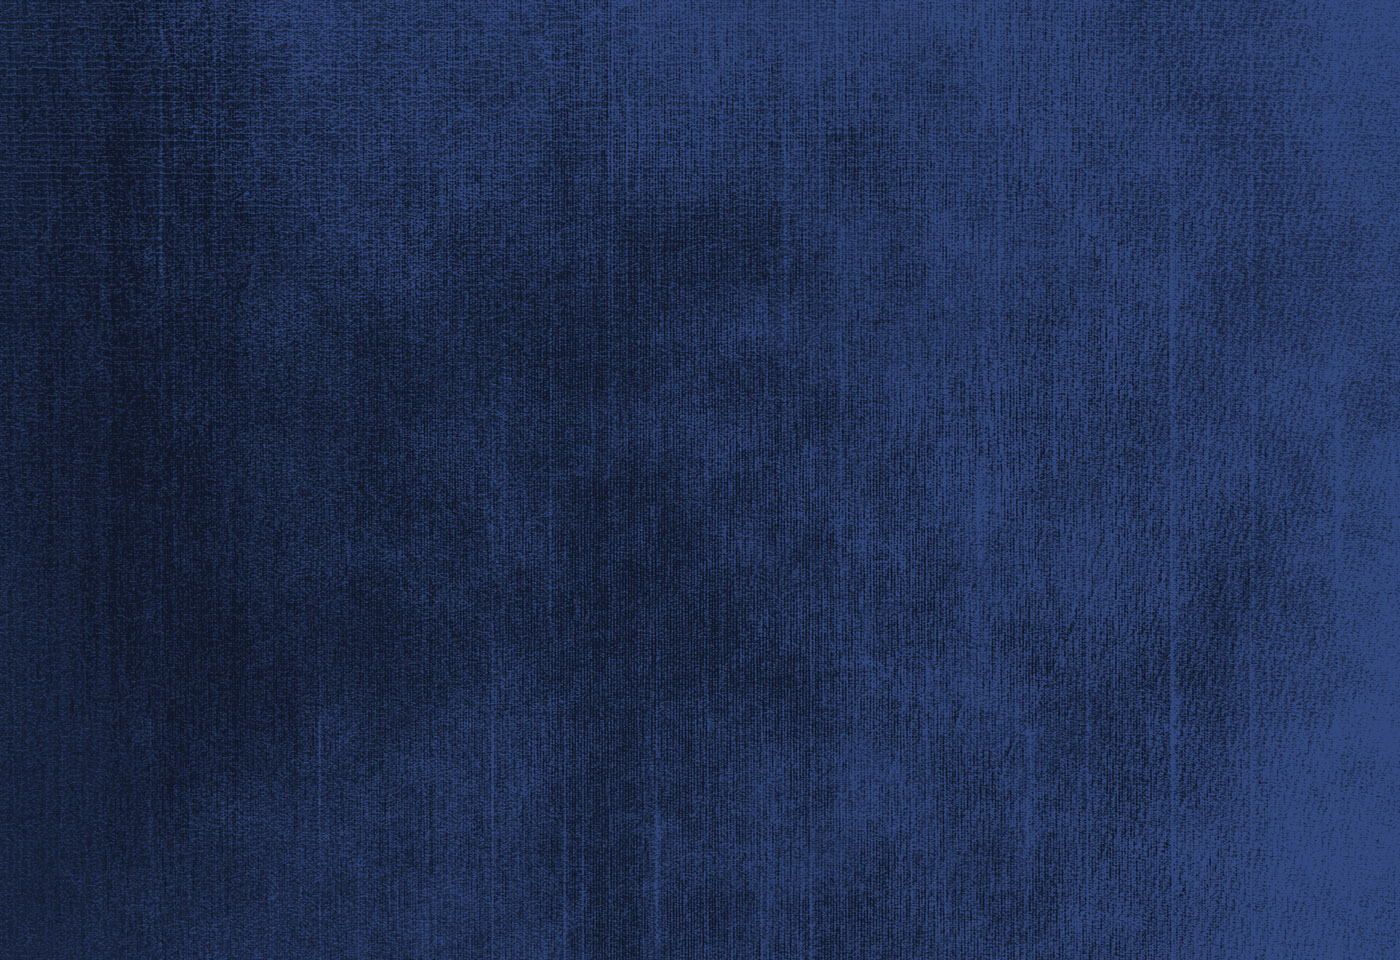 Background-Dark-Blue